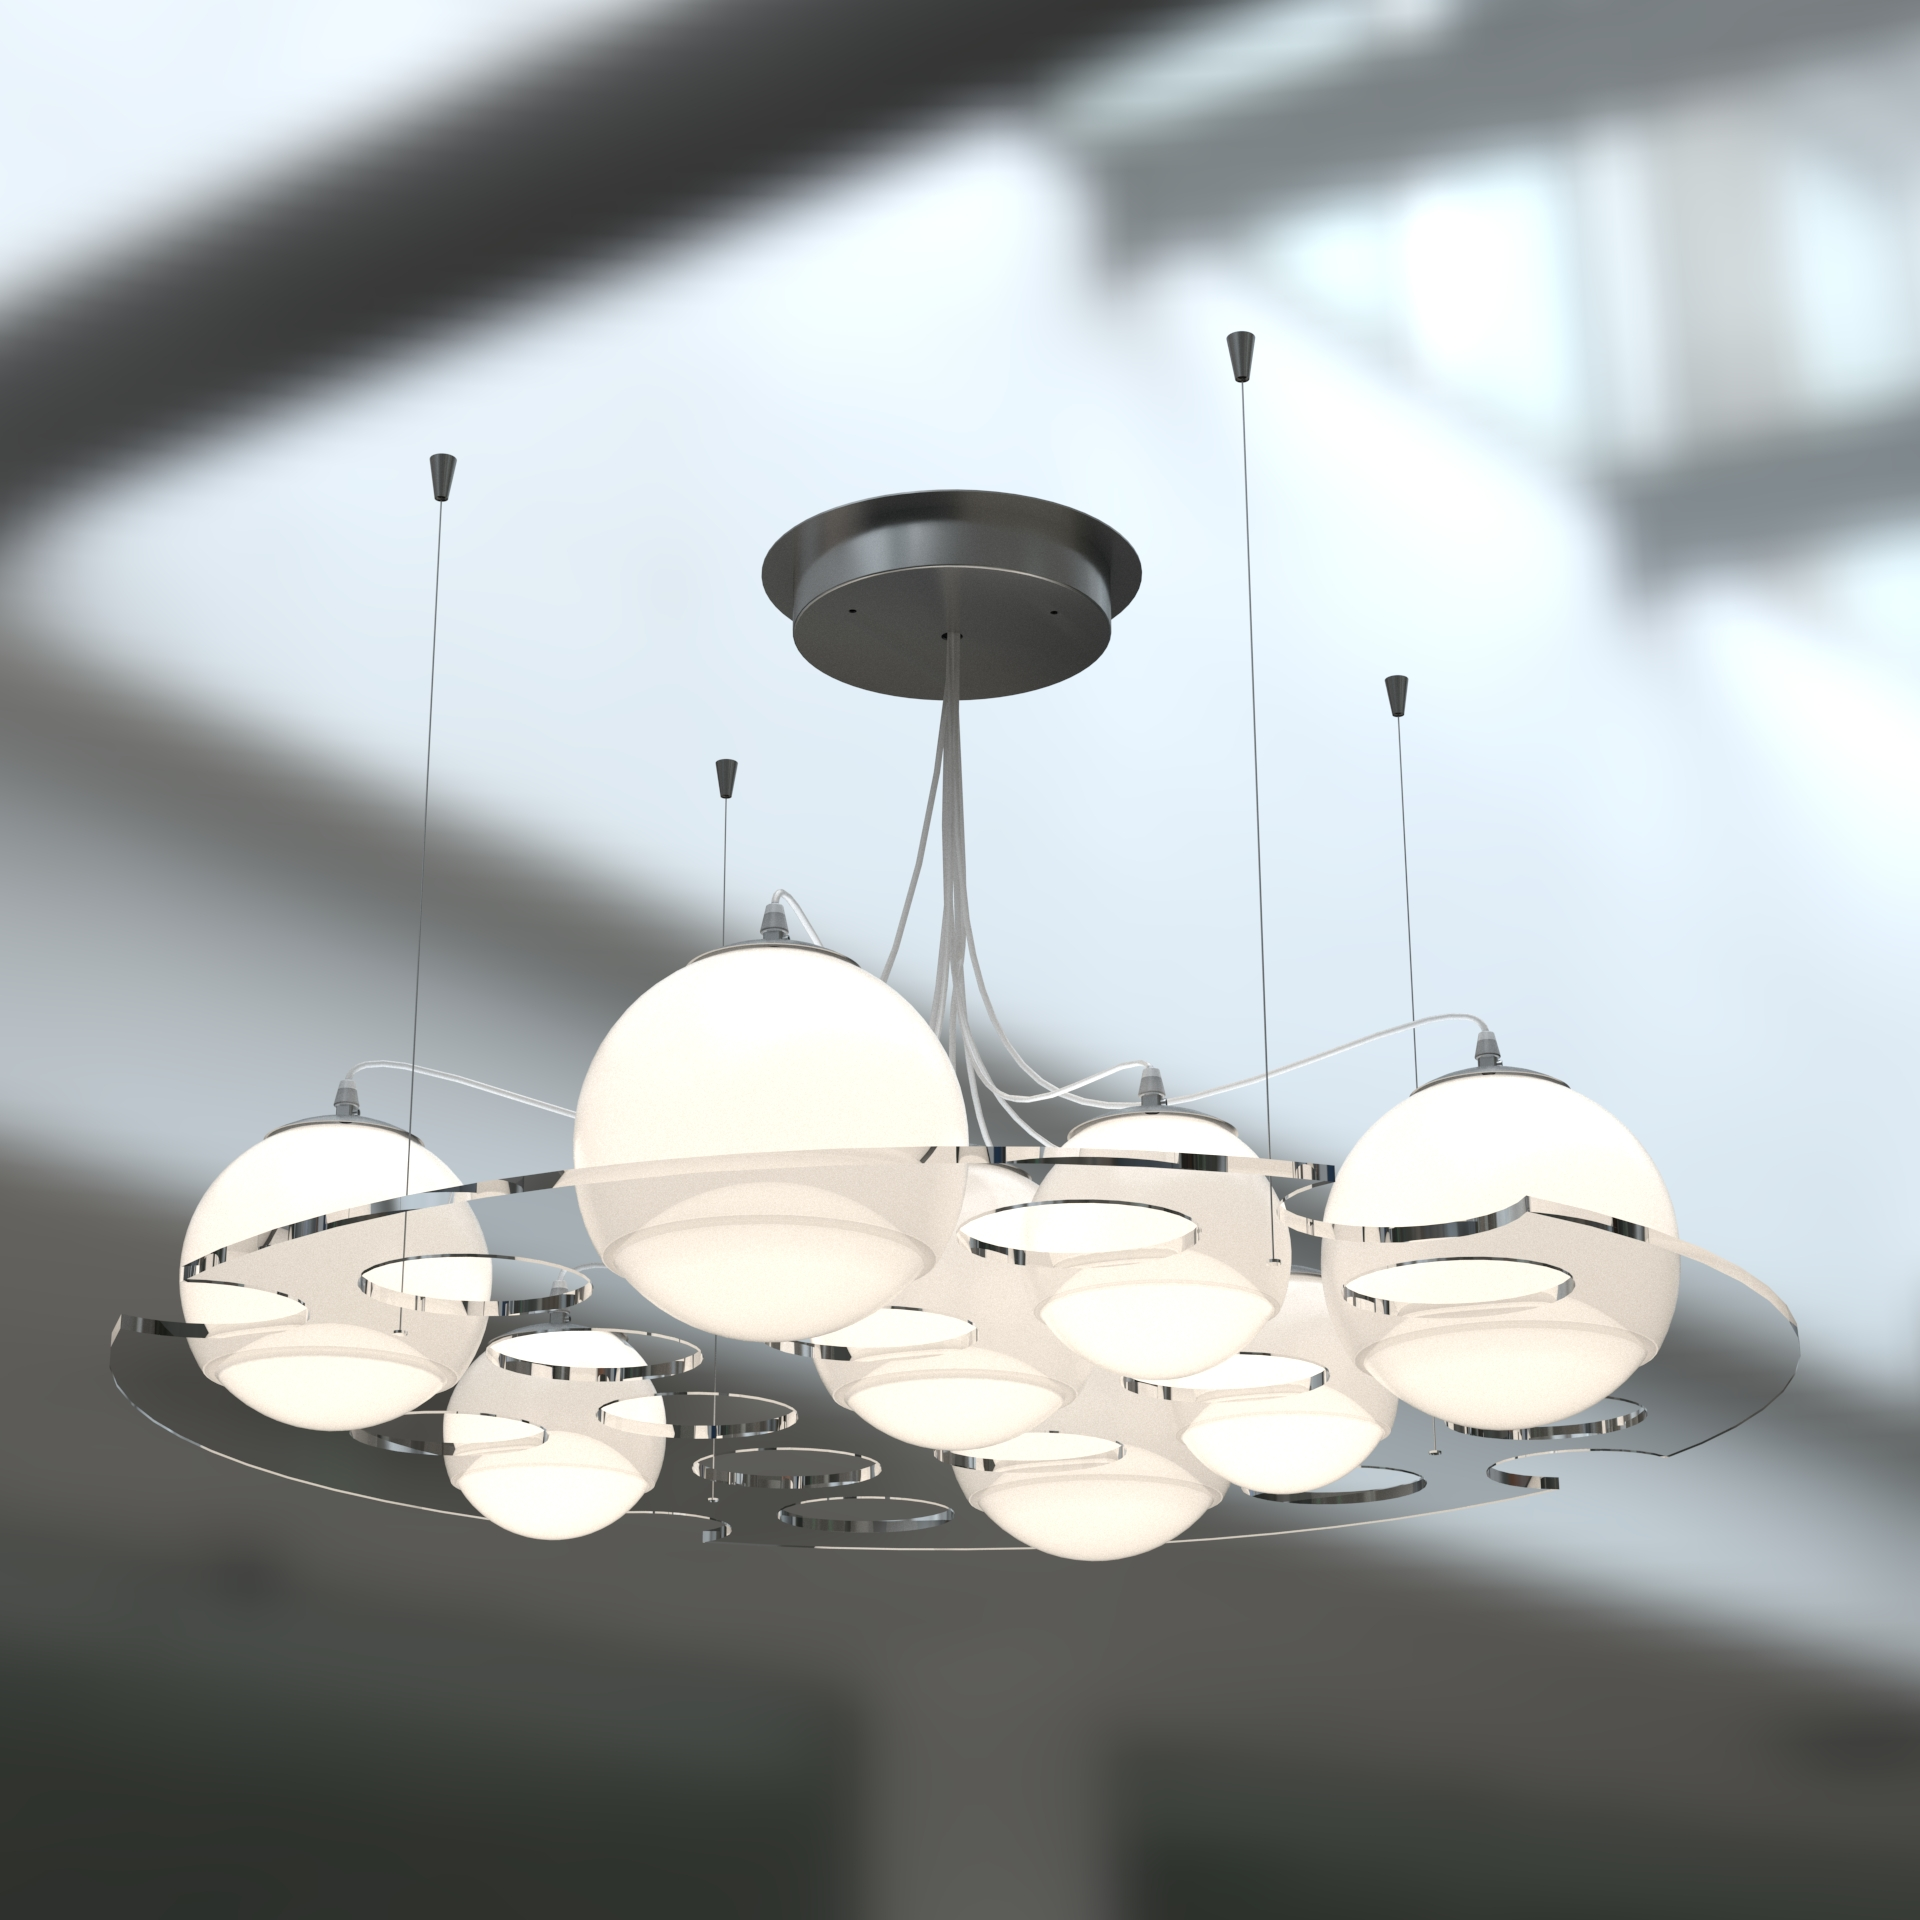 Suspension Light AI 02 Preview 1.jpg